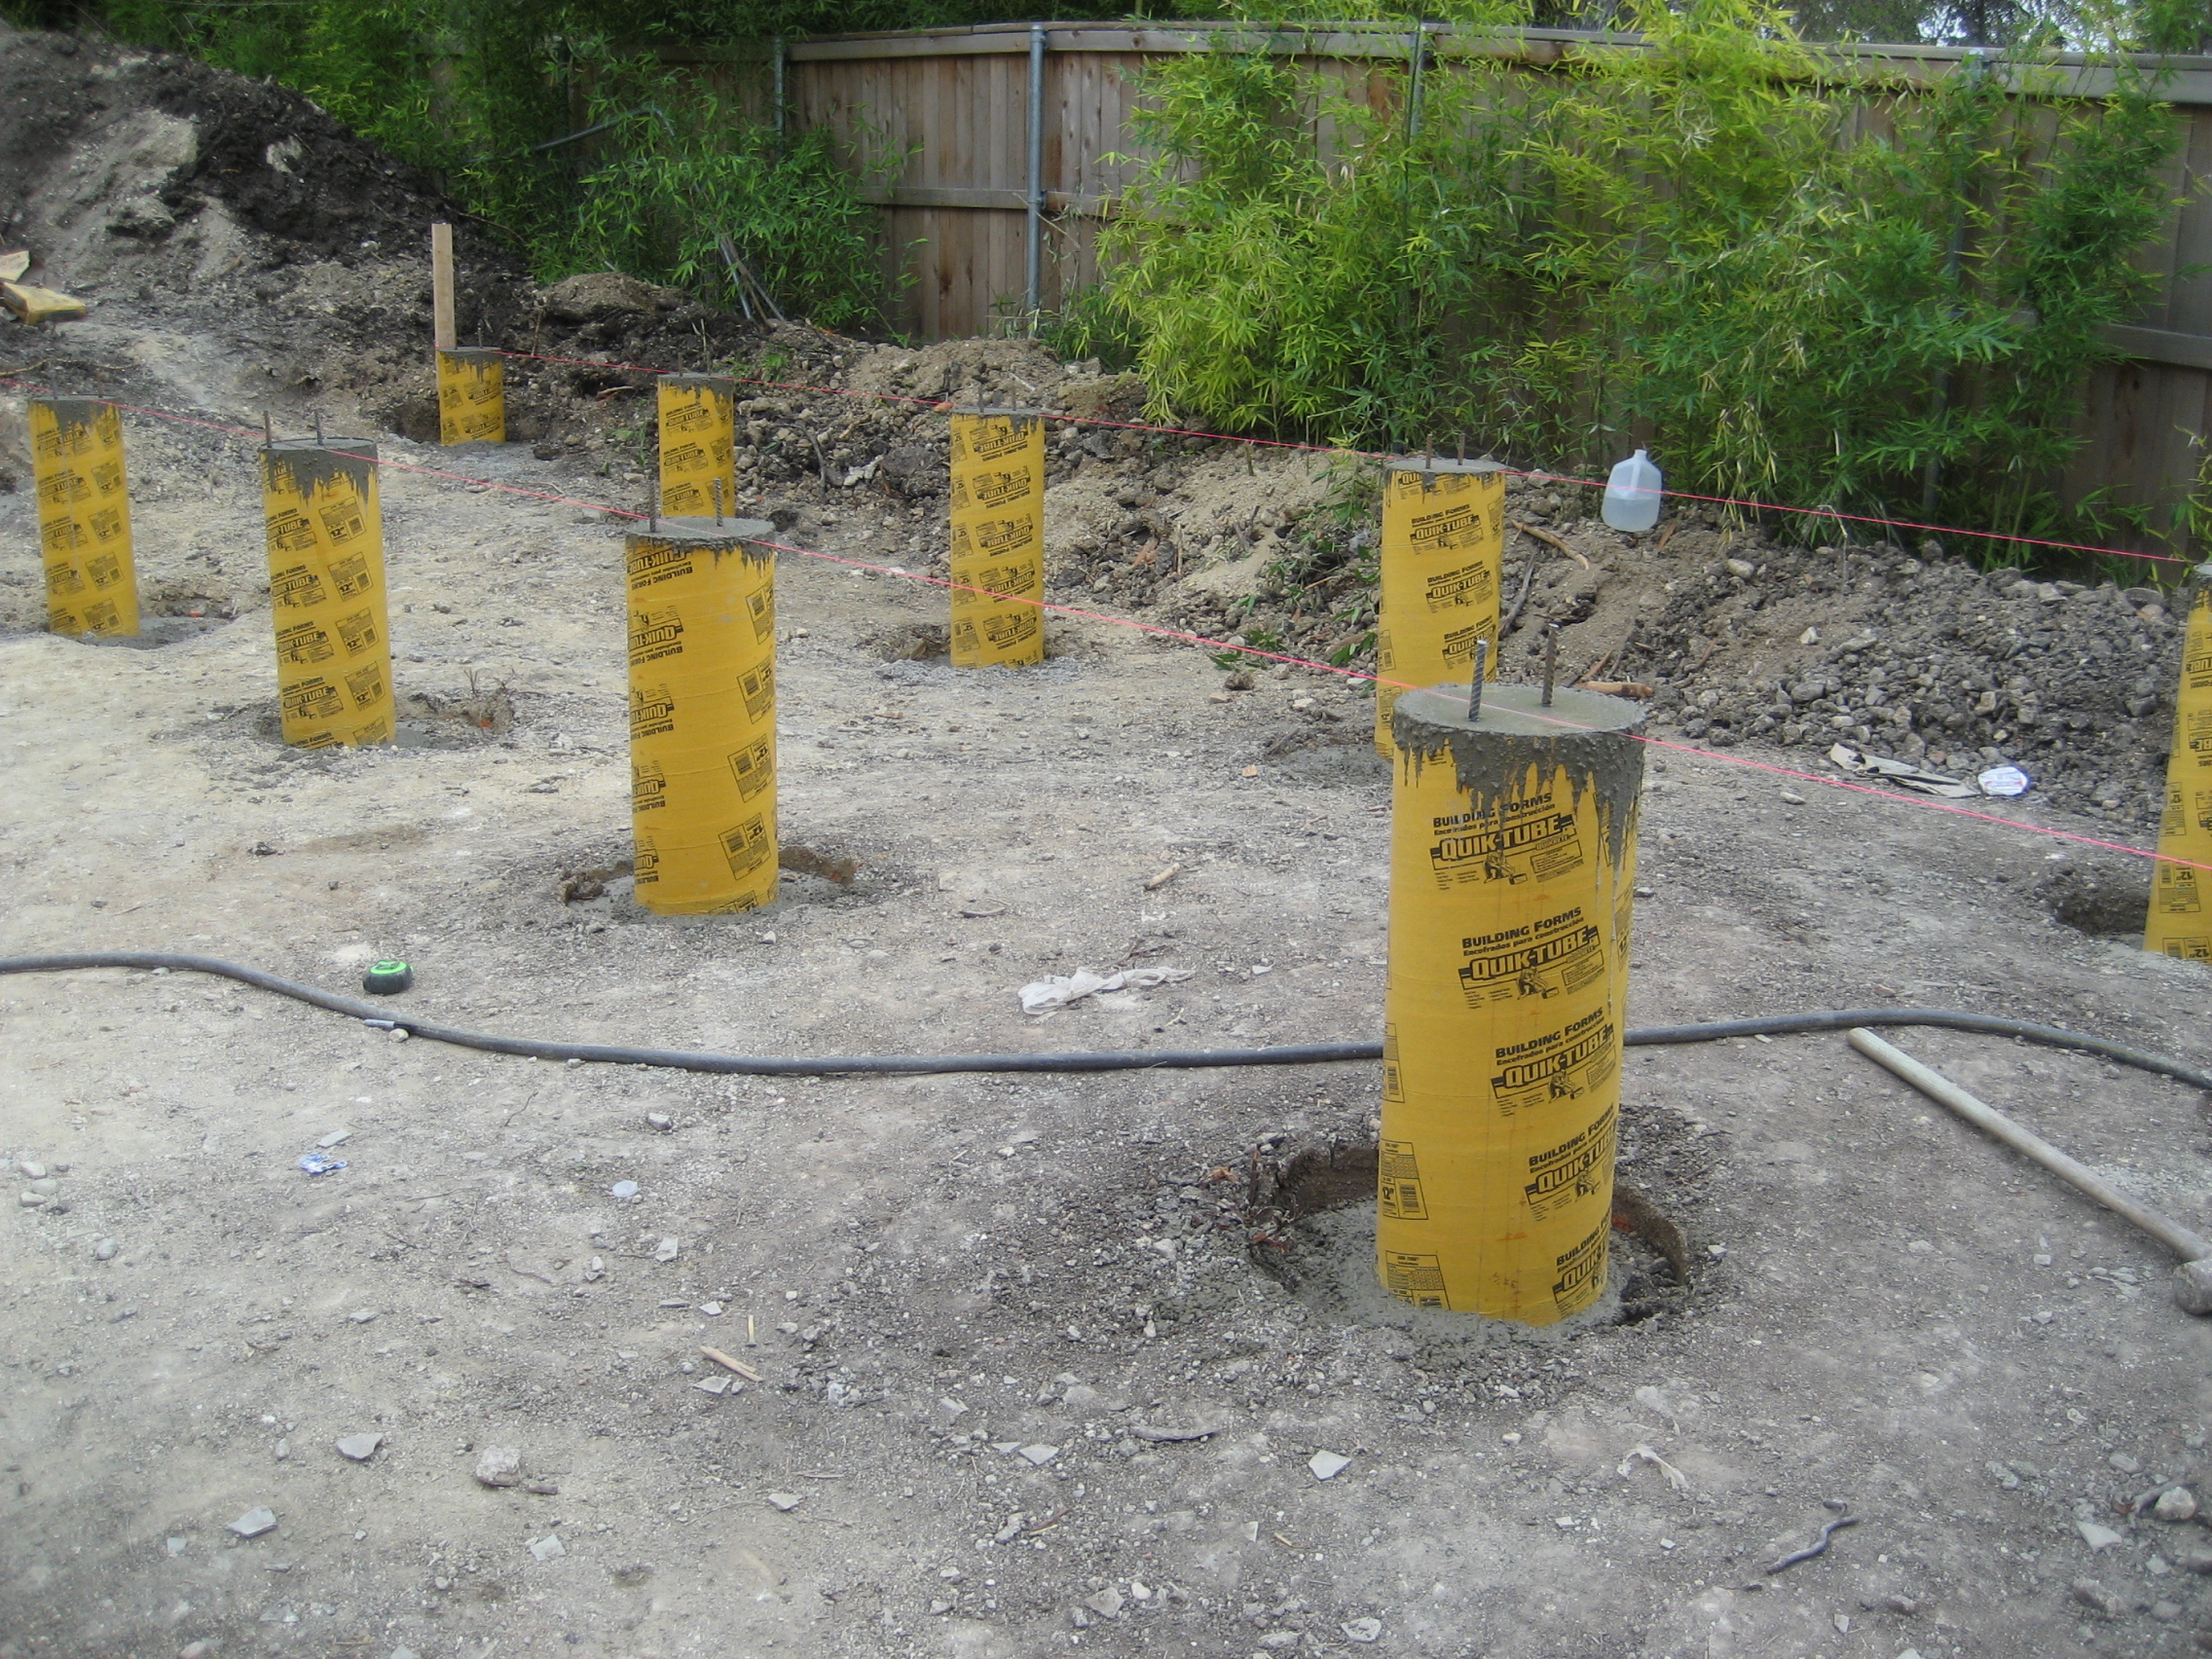 Foundations for The pier foundation